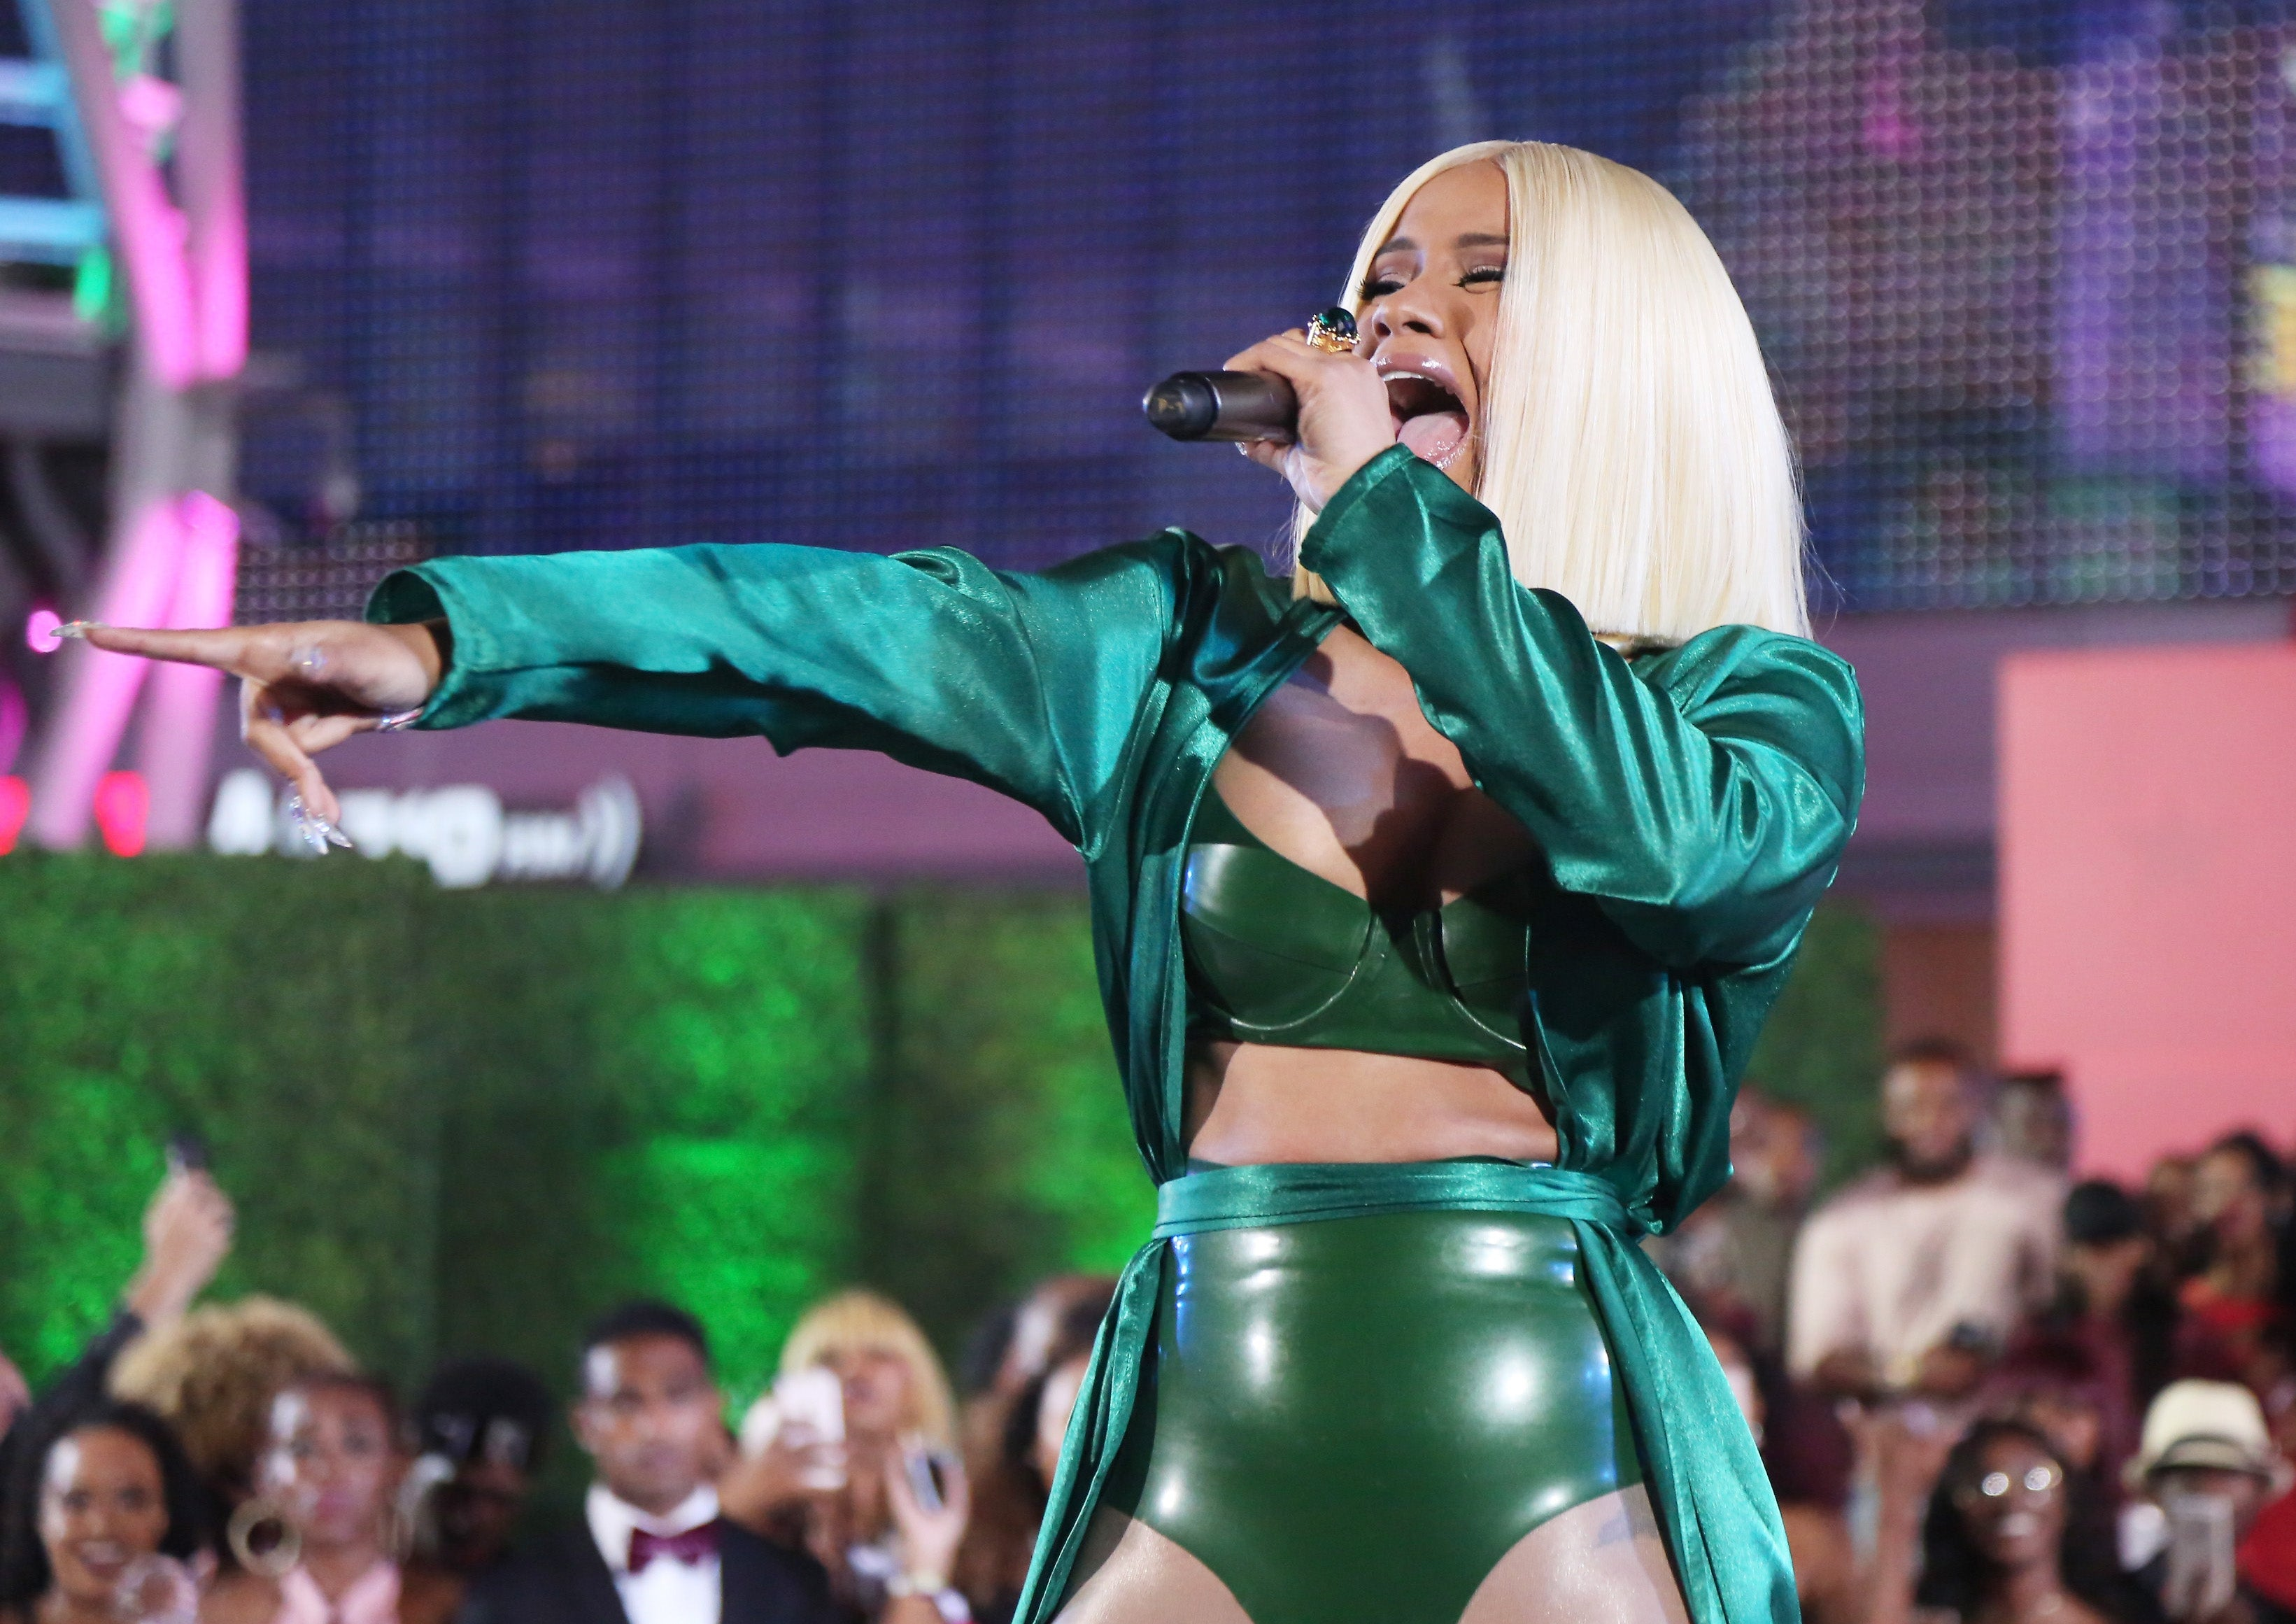 Beats 1 DJ Julie Adenuga On What We'd Love About Cardi B's Shows